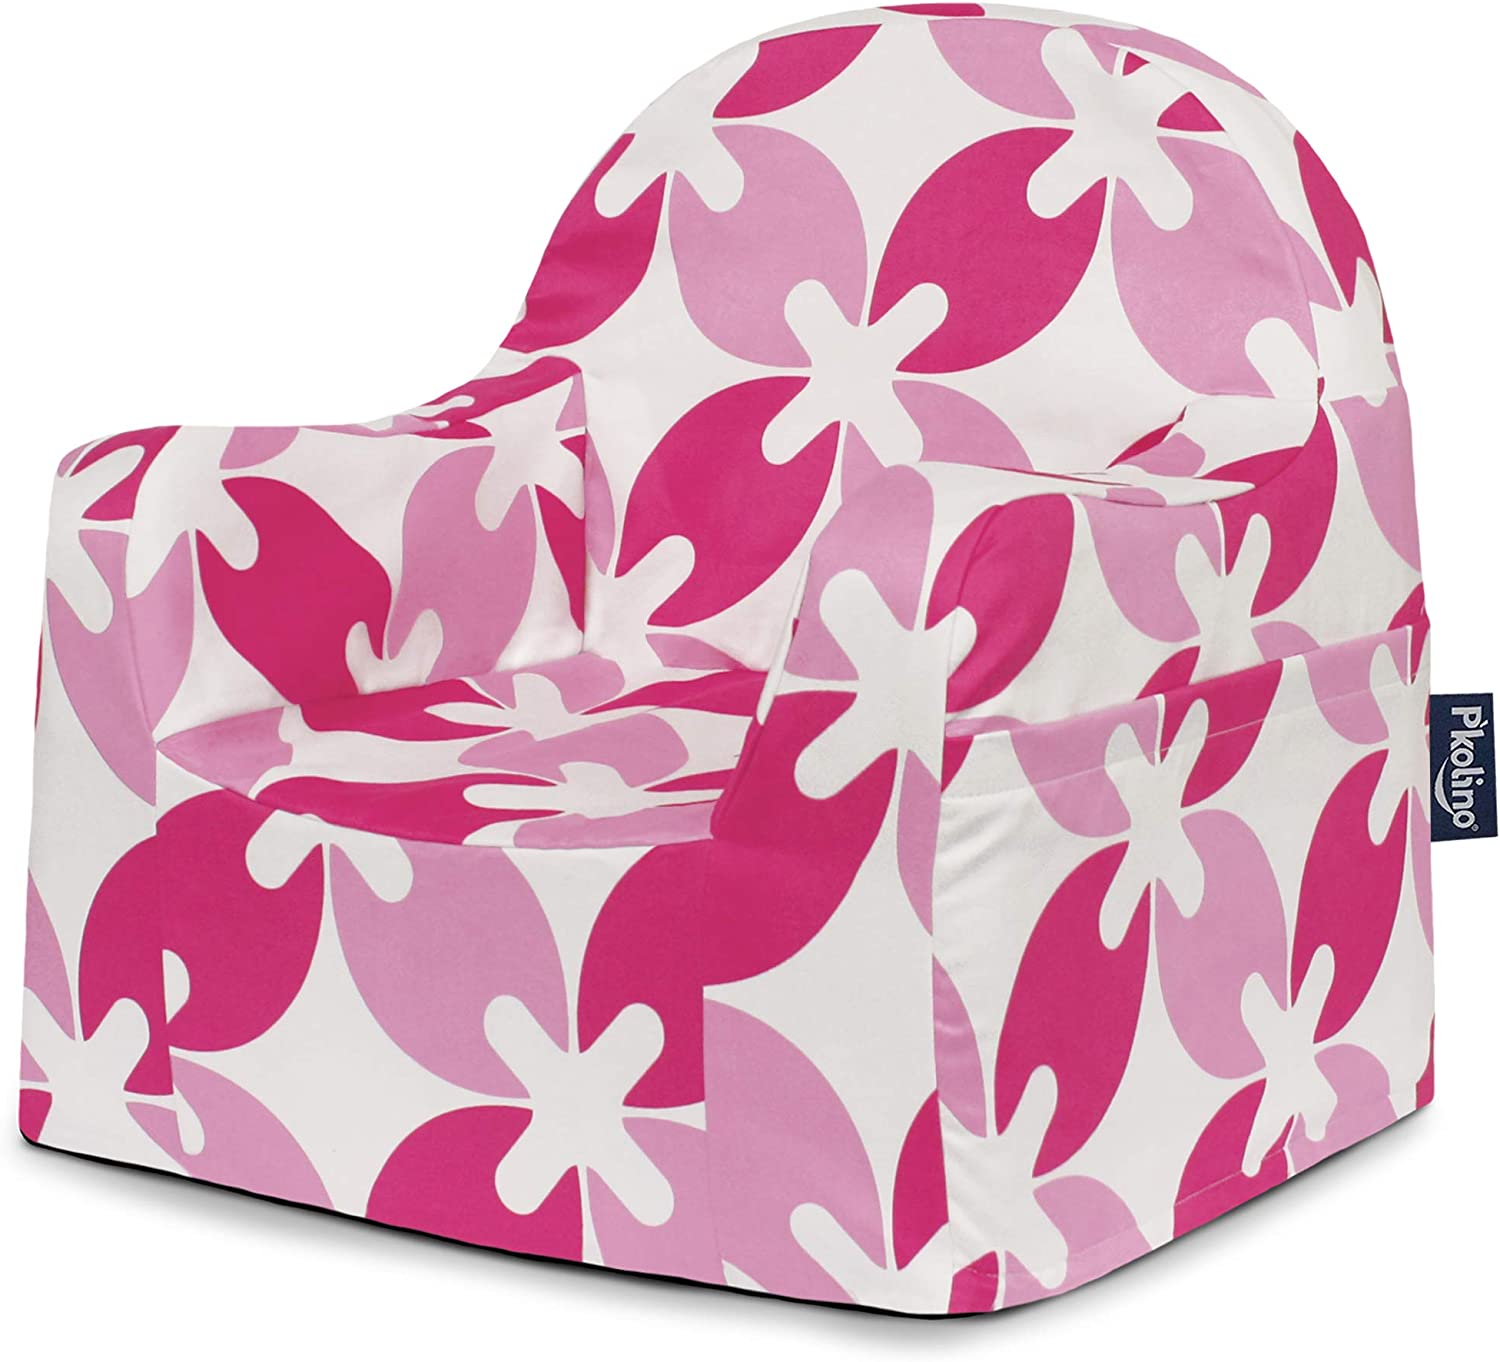 P'kolino PKFFLRPL Little Reader Chair - Pink White Leaves